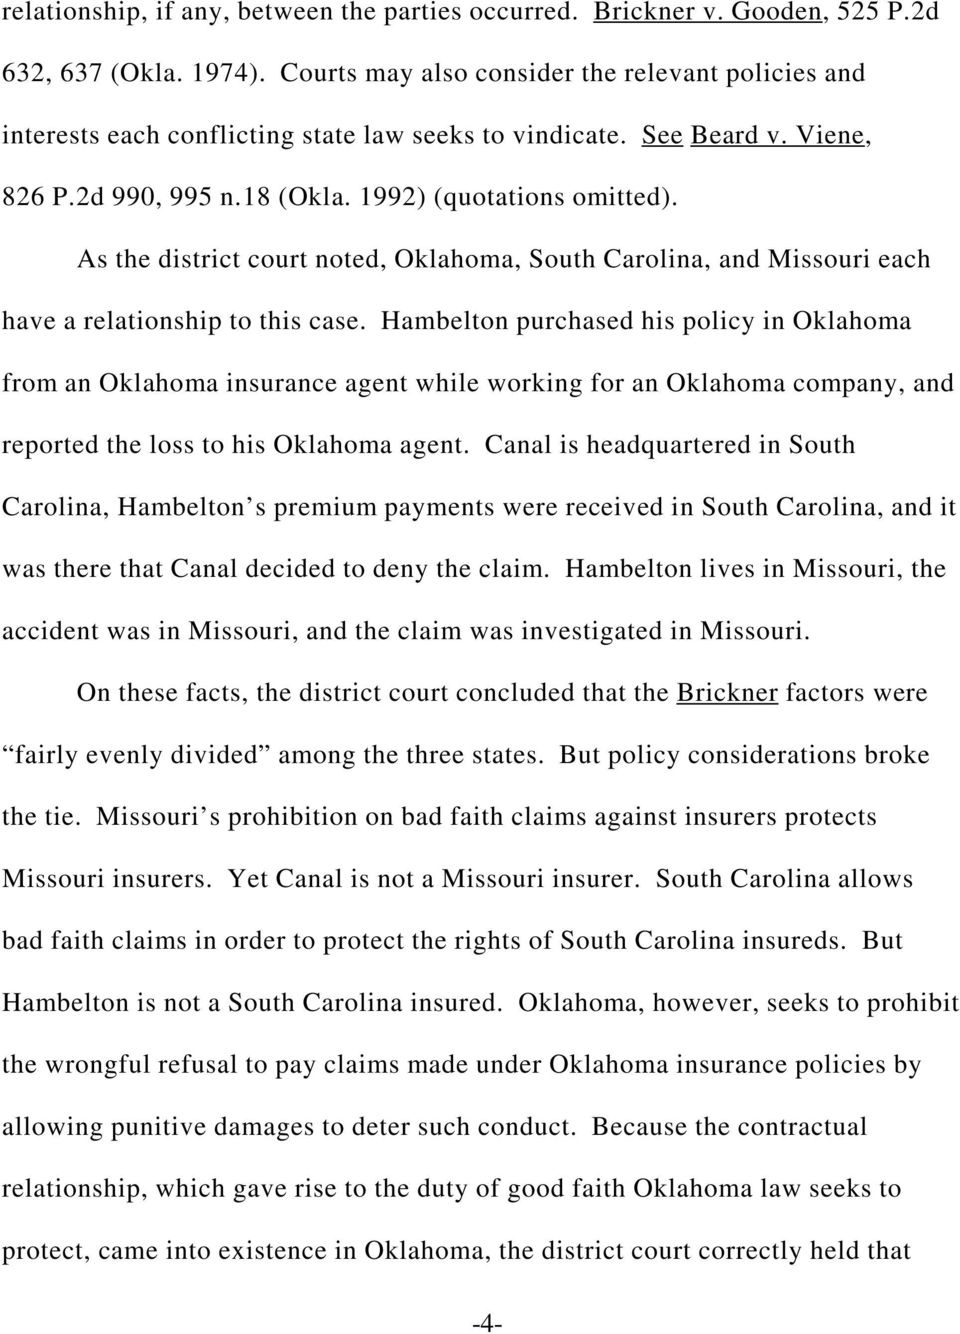 As the district court noted, Oklahoma, South Carolina, and Missouri each have a relationship to this case.